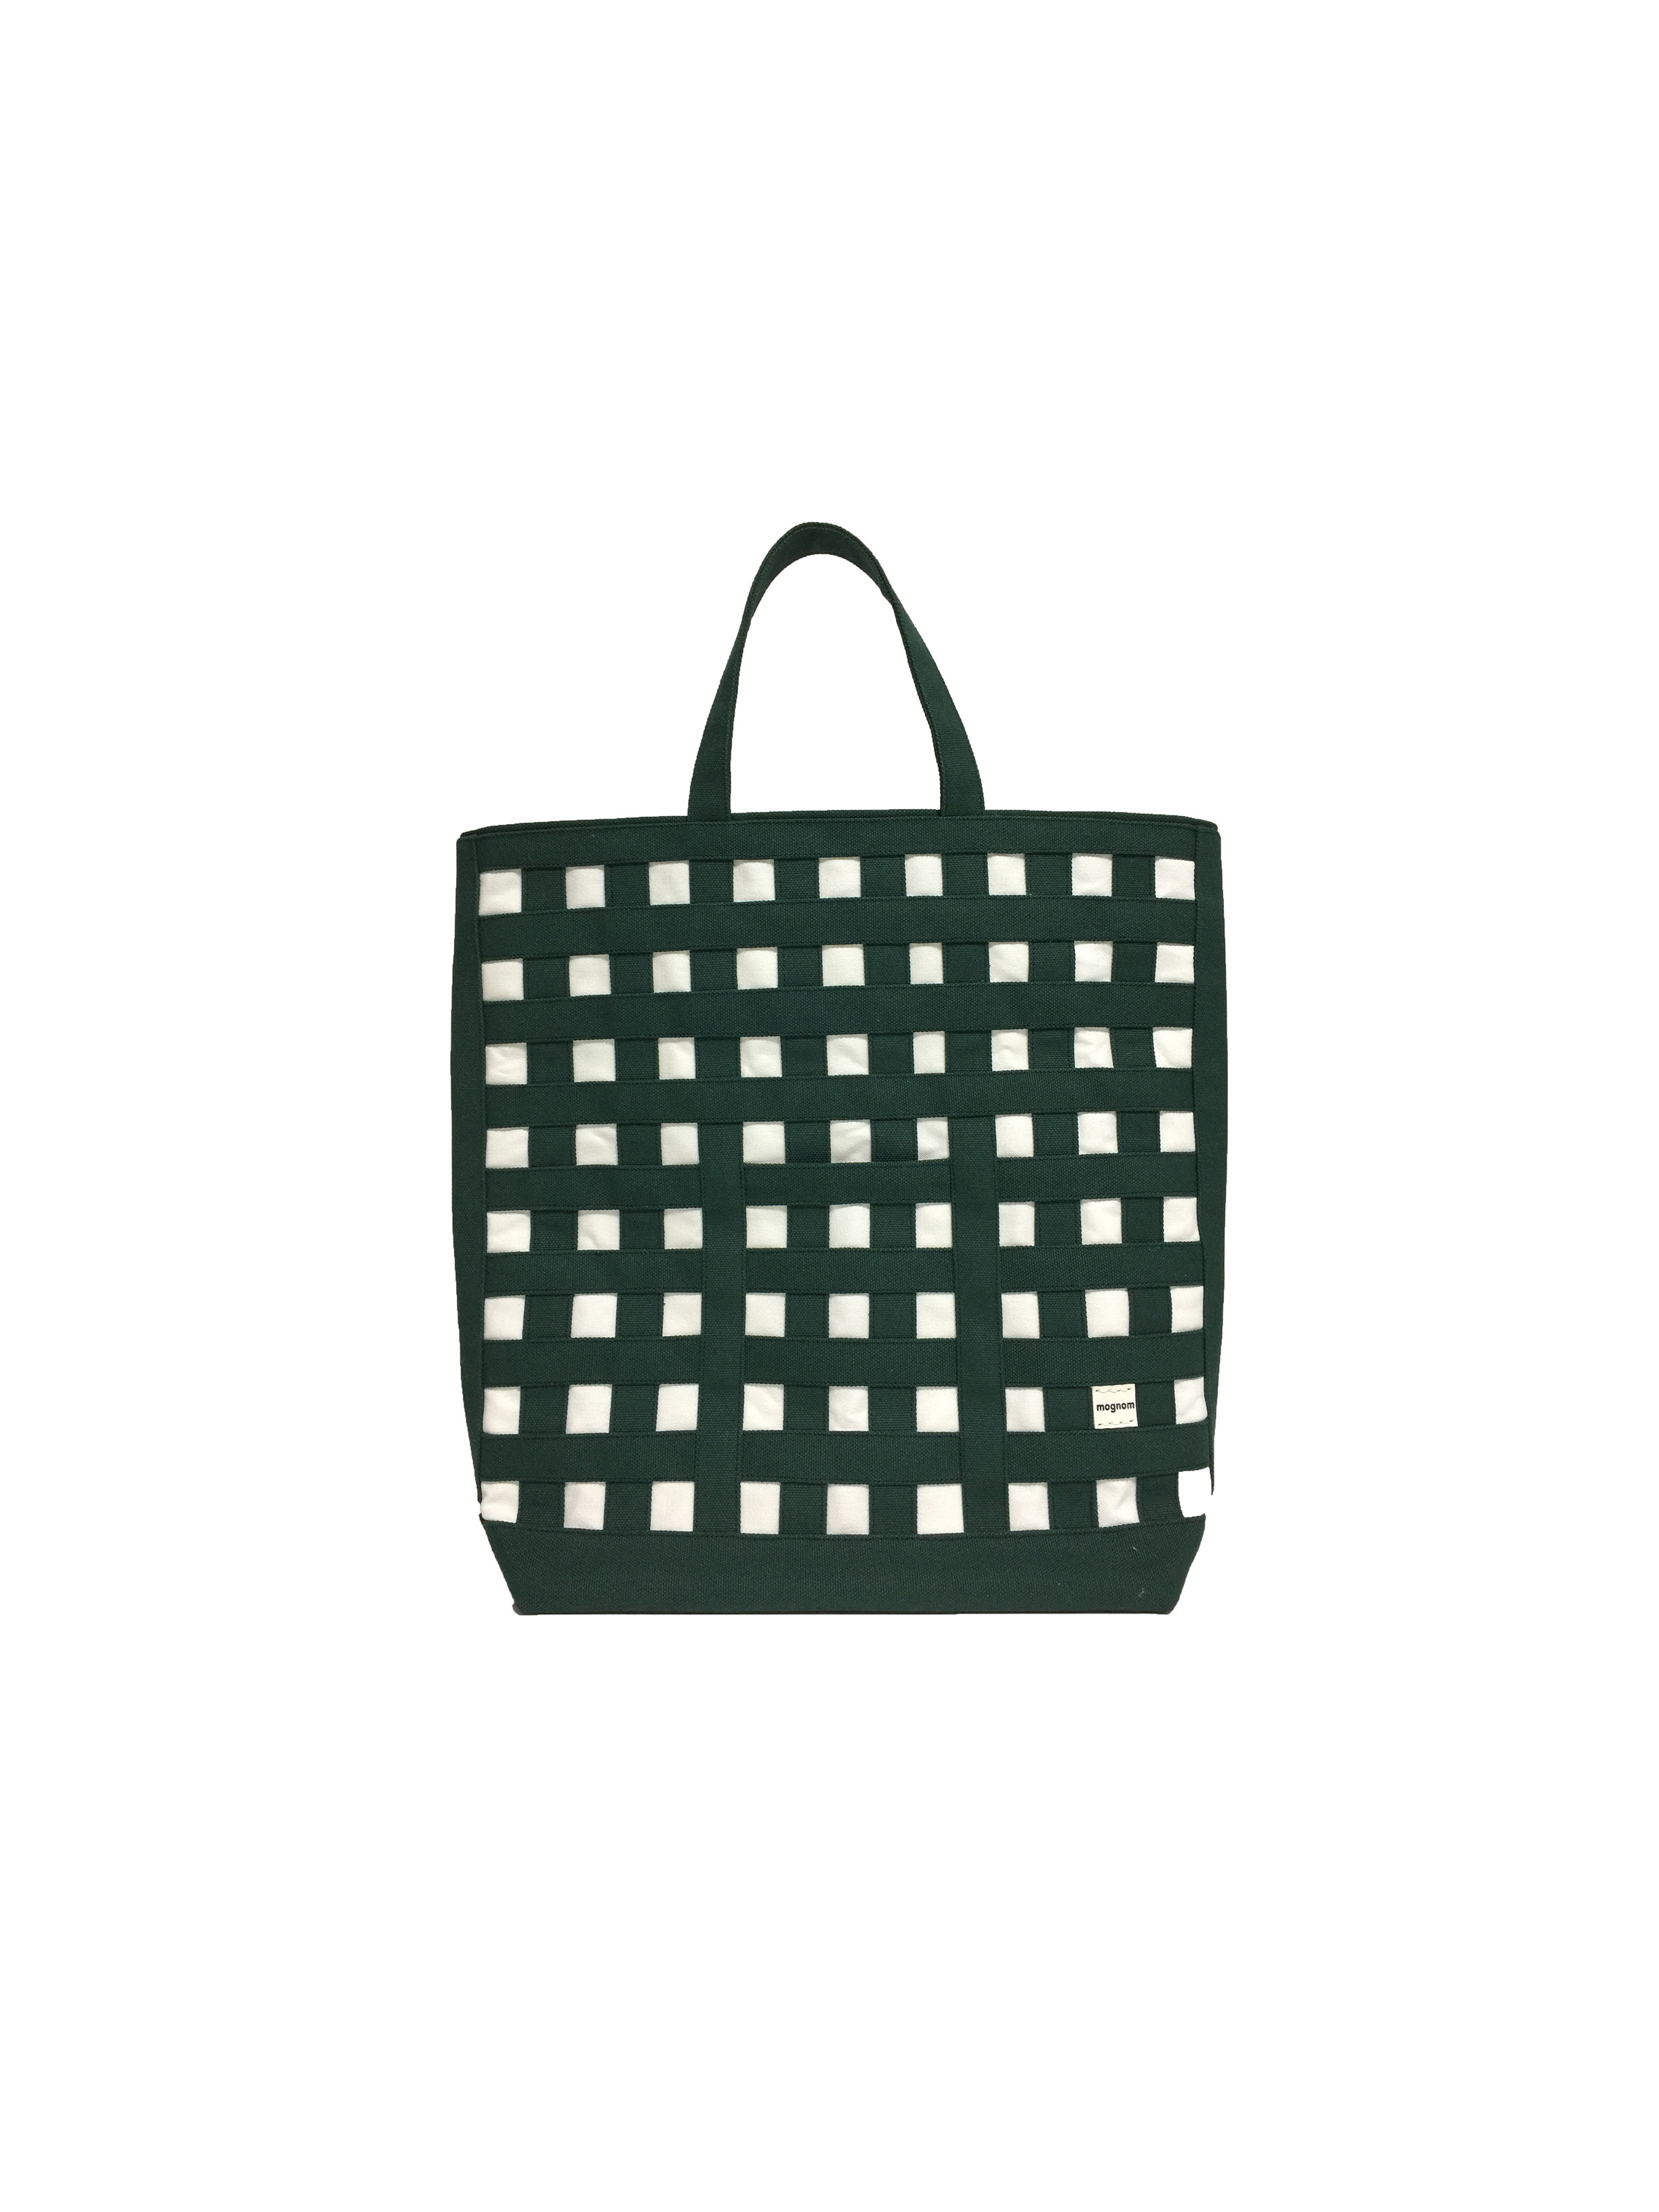 gingham tote ギンガムトート carrés  カレ 20-72  カラー:ダークグリーン